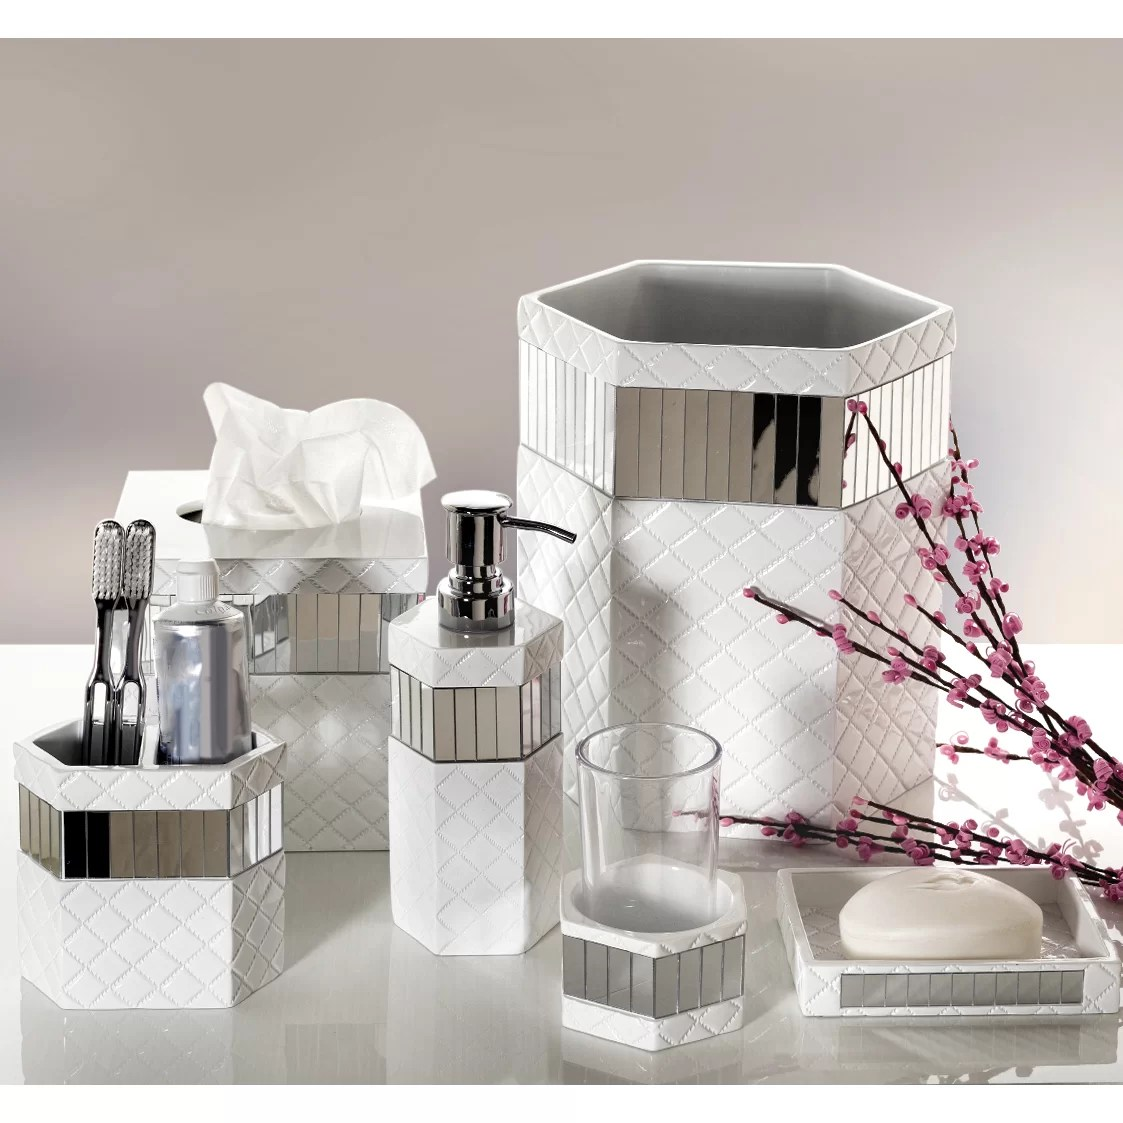 Mirrored Bathroom Accessories Sets Creative Scents Quilted Mirror 6 Piece Bathroom Accessory